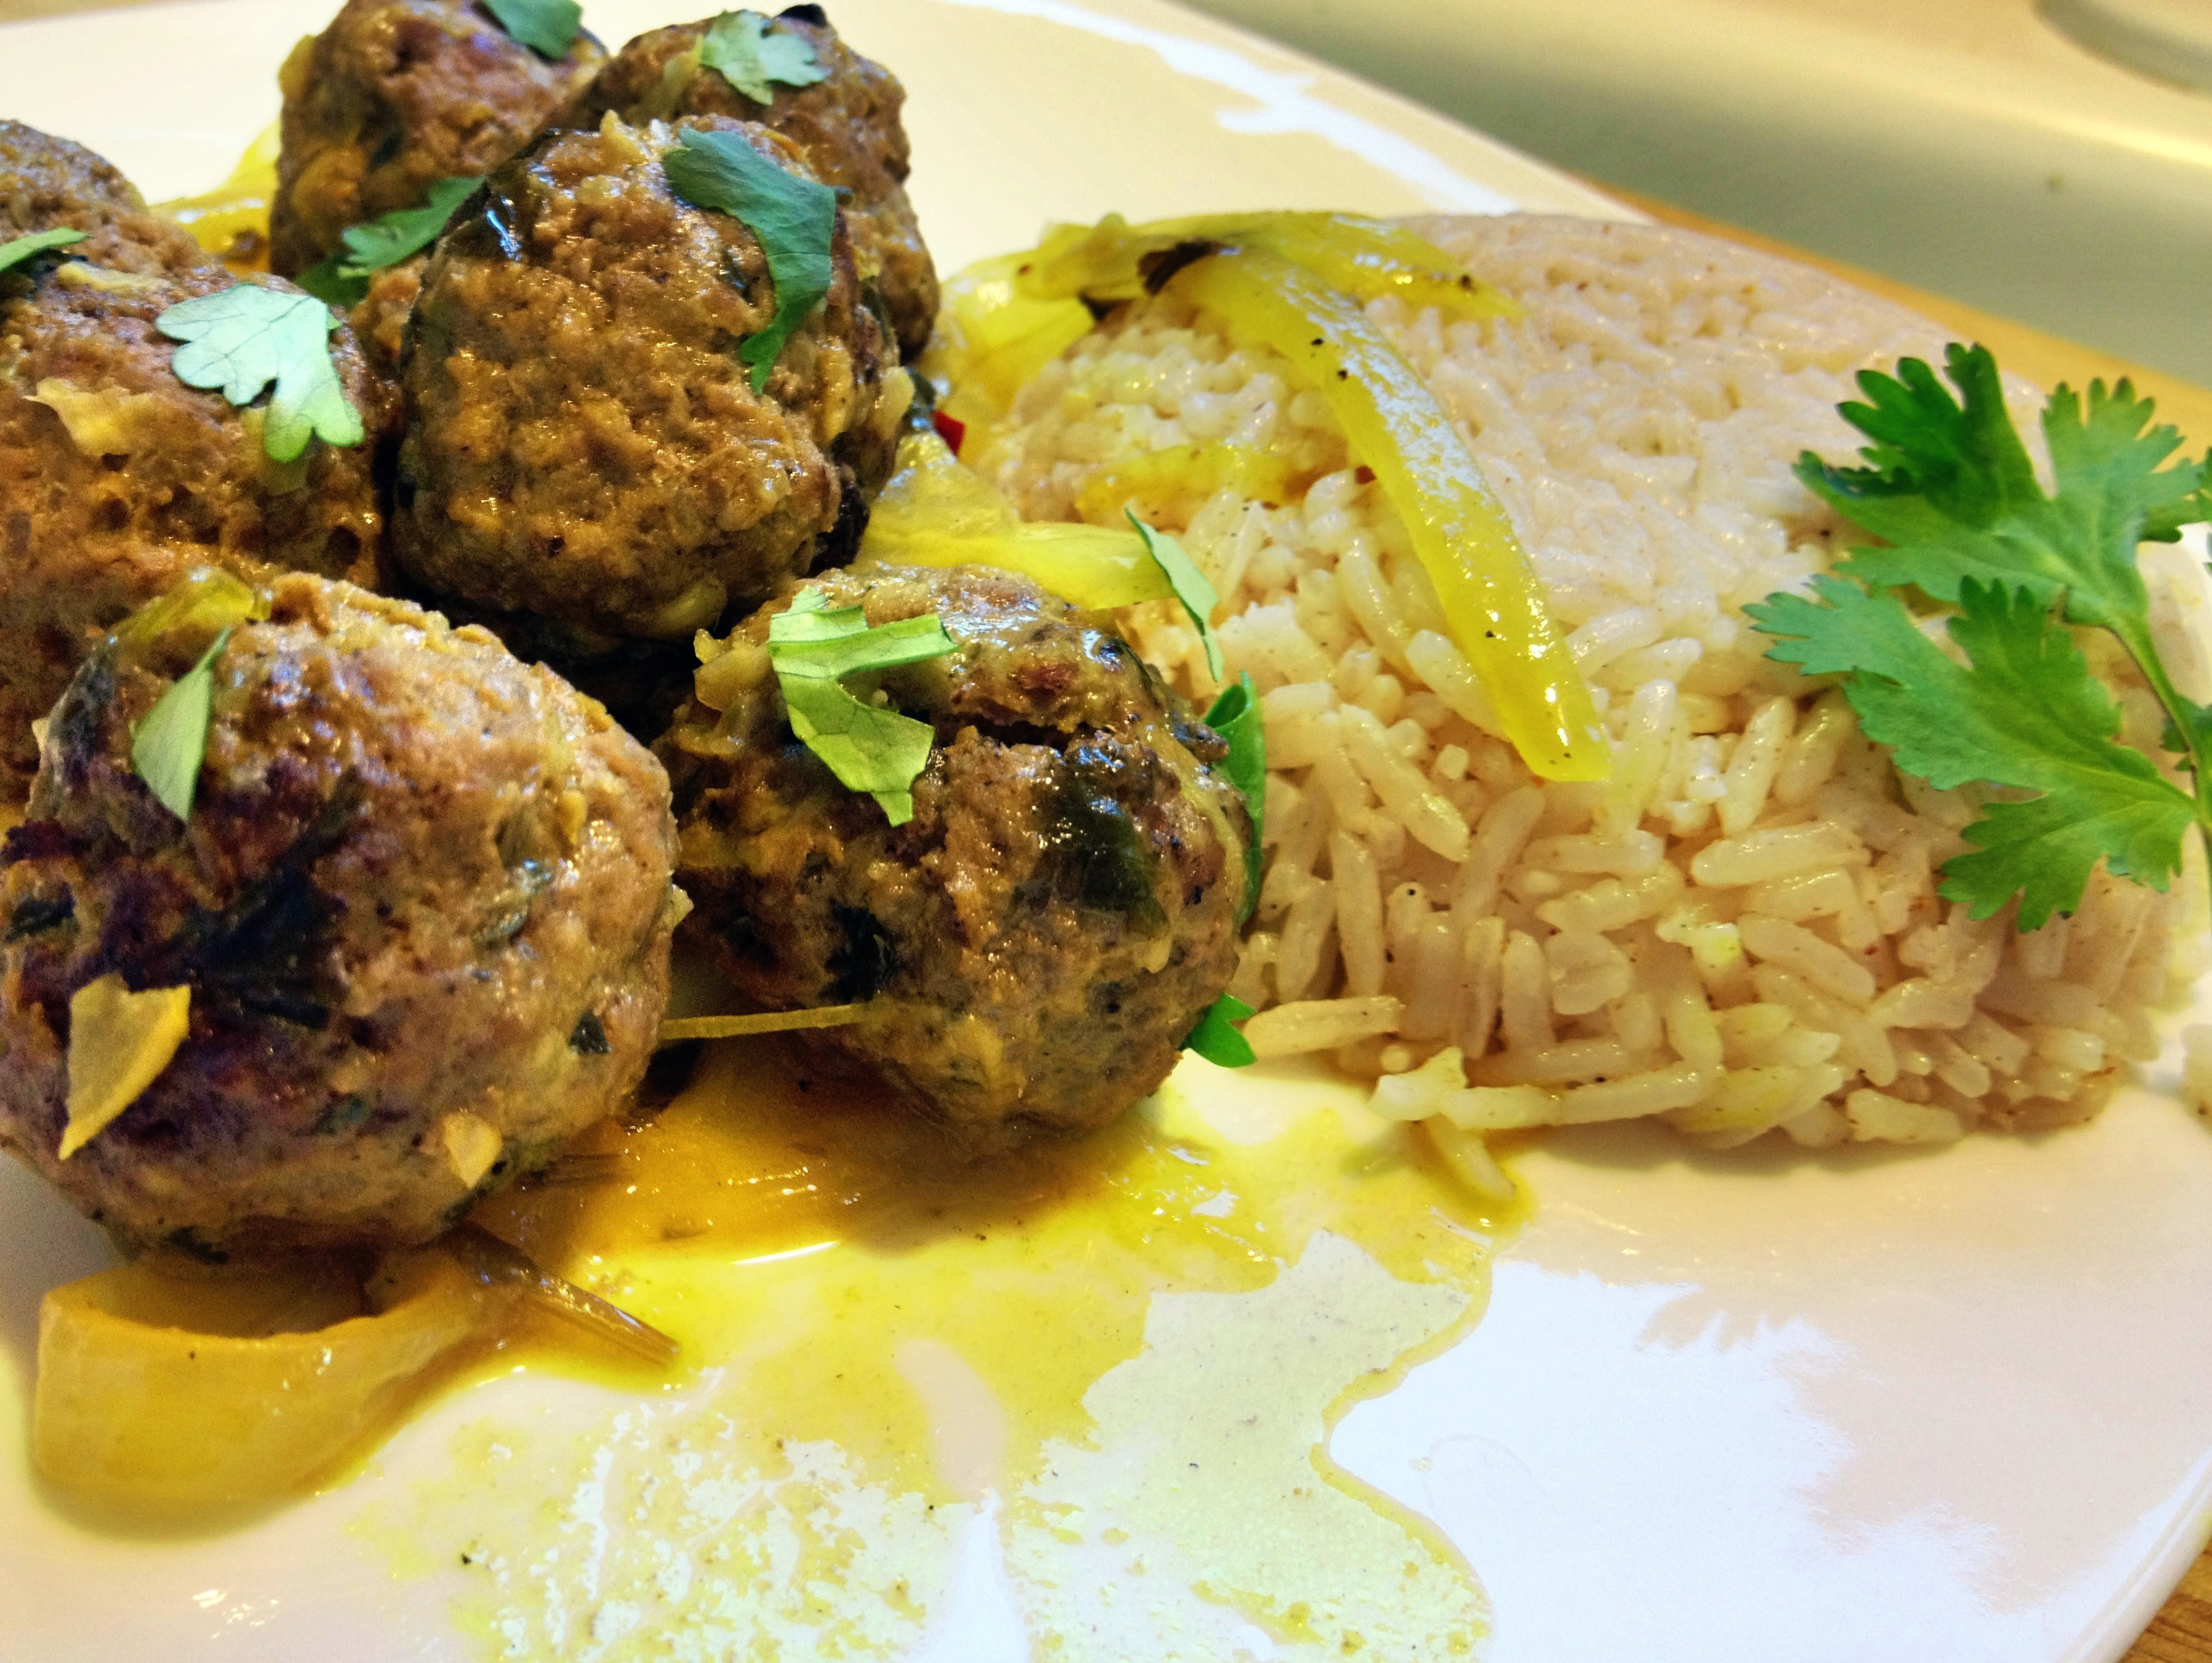 Kefta (Moroccan Meatballs) - The Wanderlust Kitchen